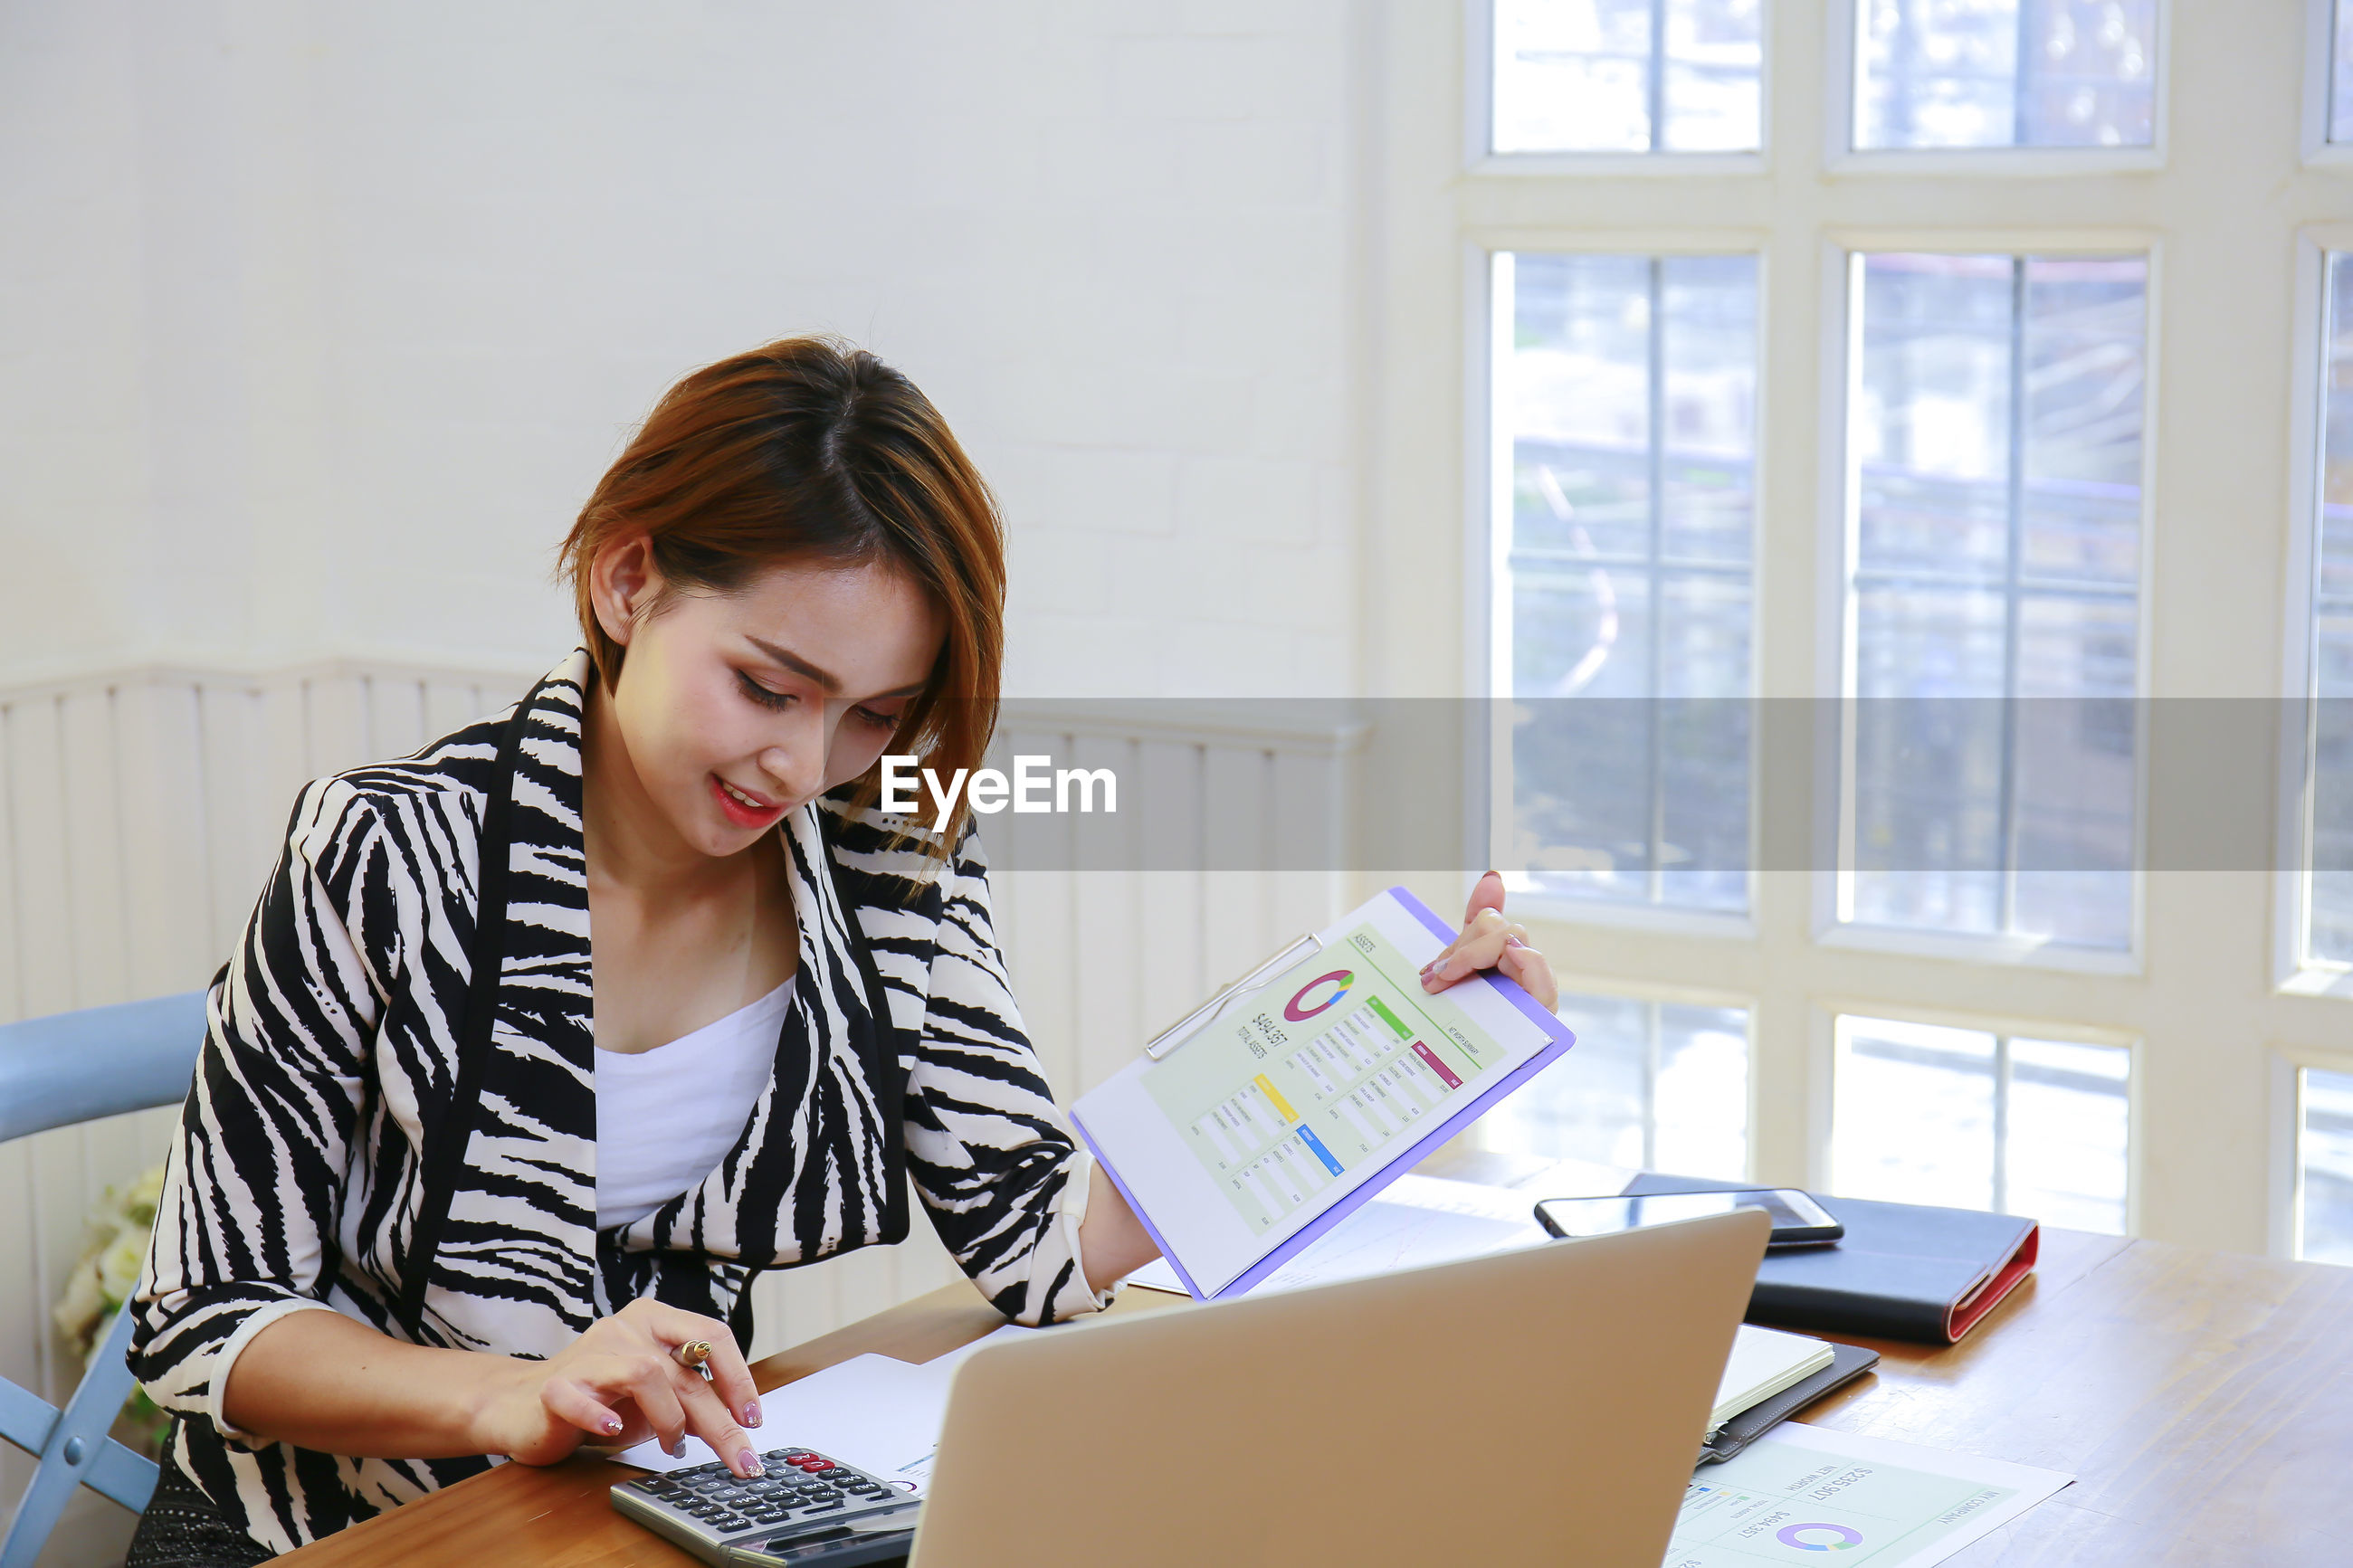 Young businesswoman using calculator while analyzing document at desk in office